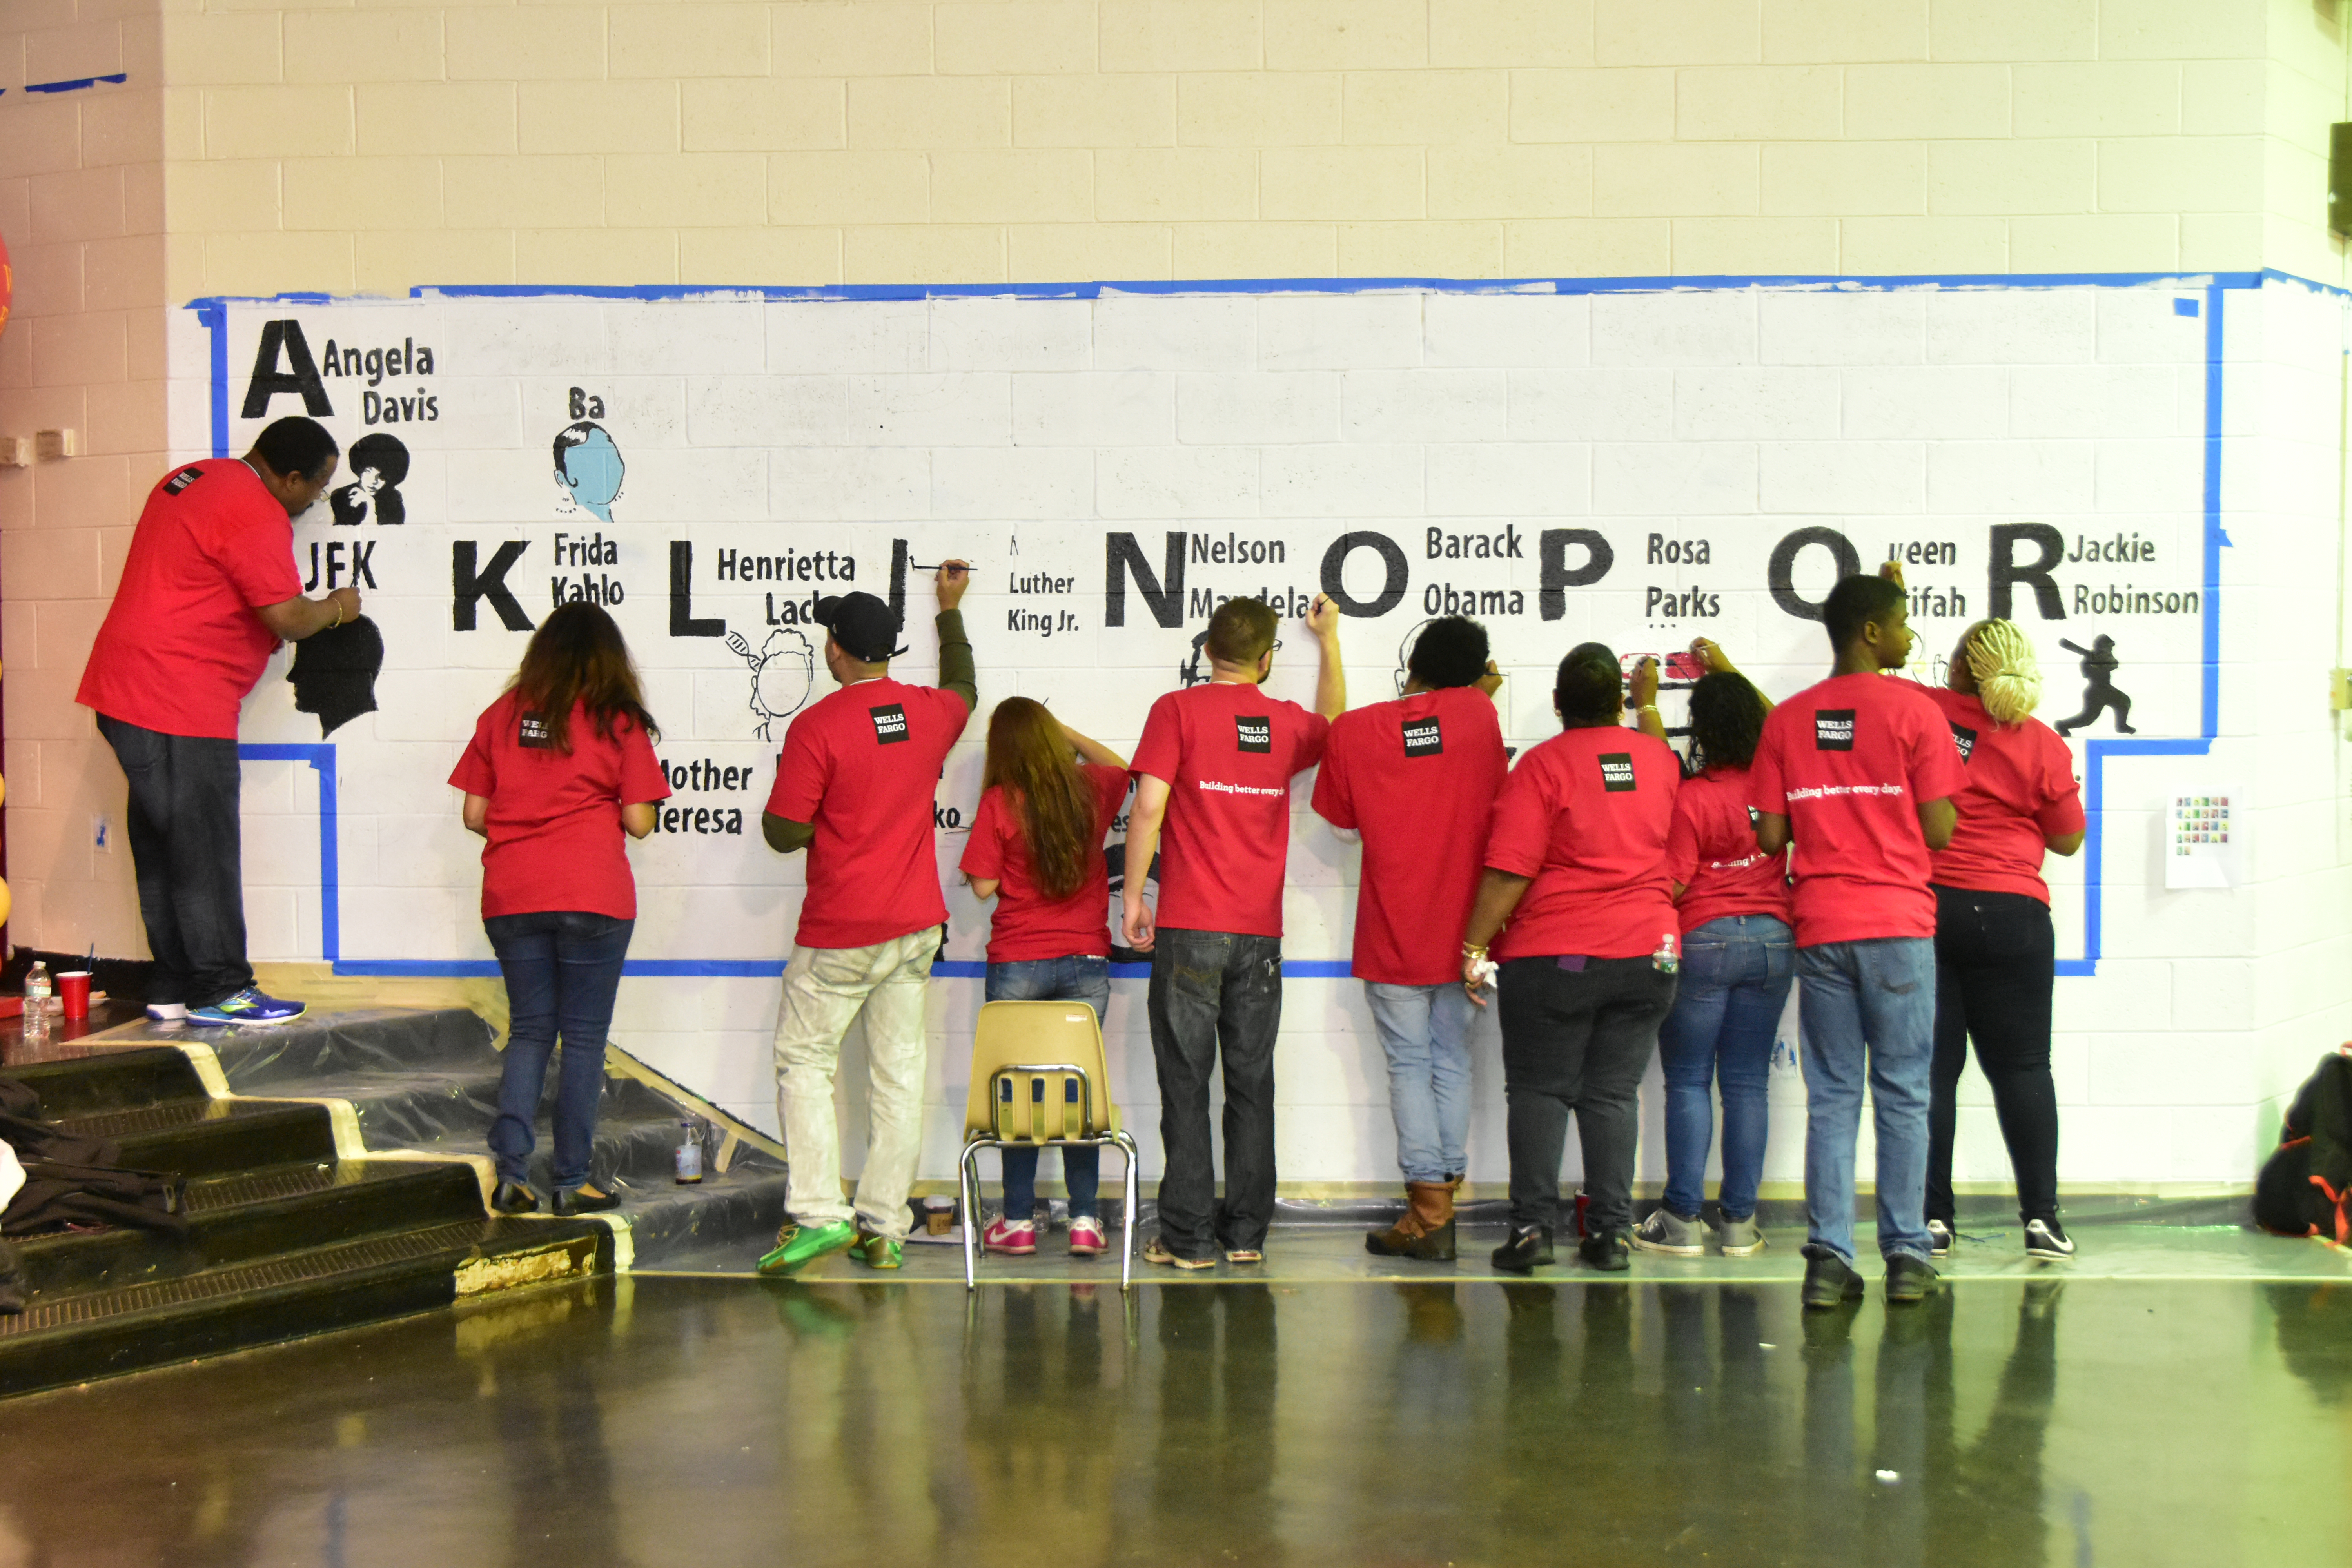 More than 325 volunteers took part in Wells Fargo's Signature Day of Service on Saturday at William Cramp Elementary.